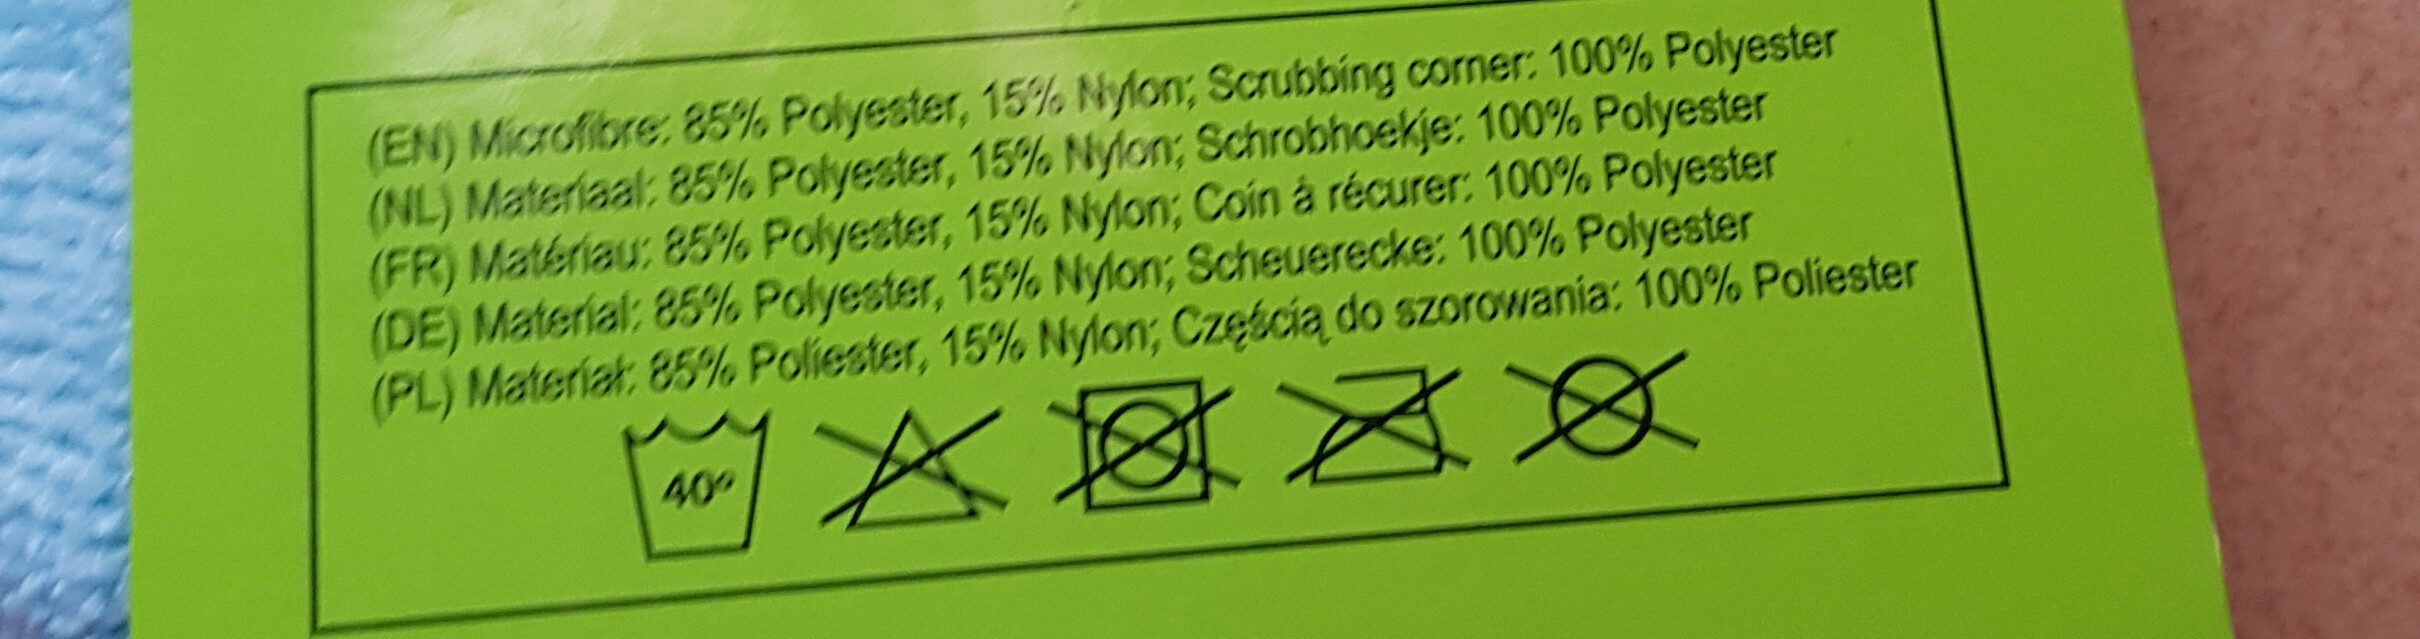 chiffons microfibre - Ingredients